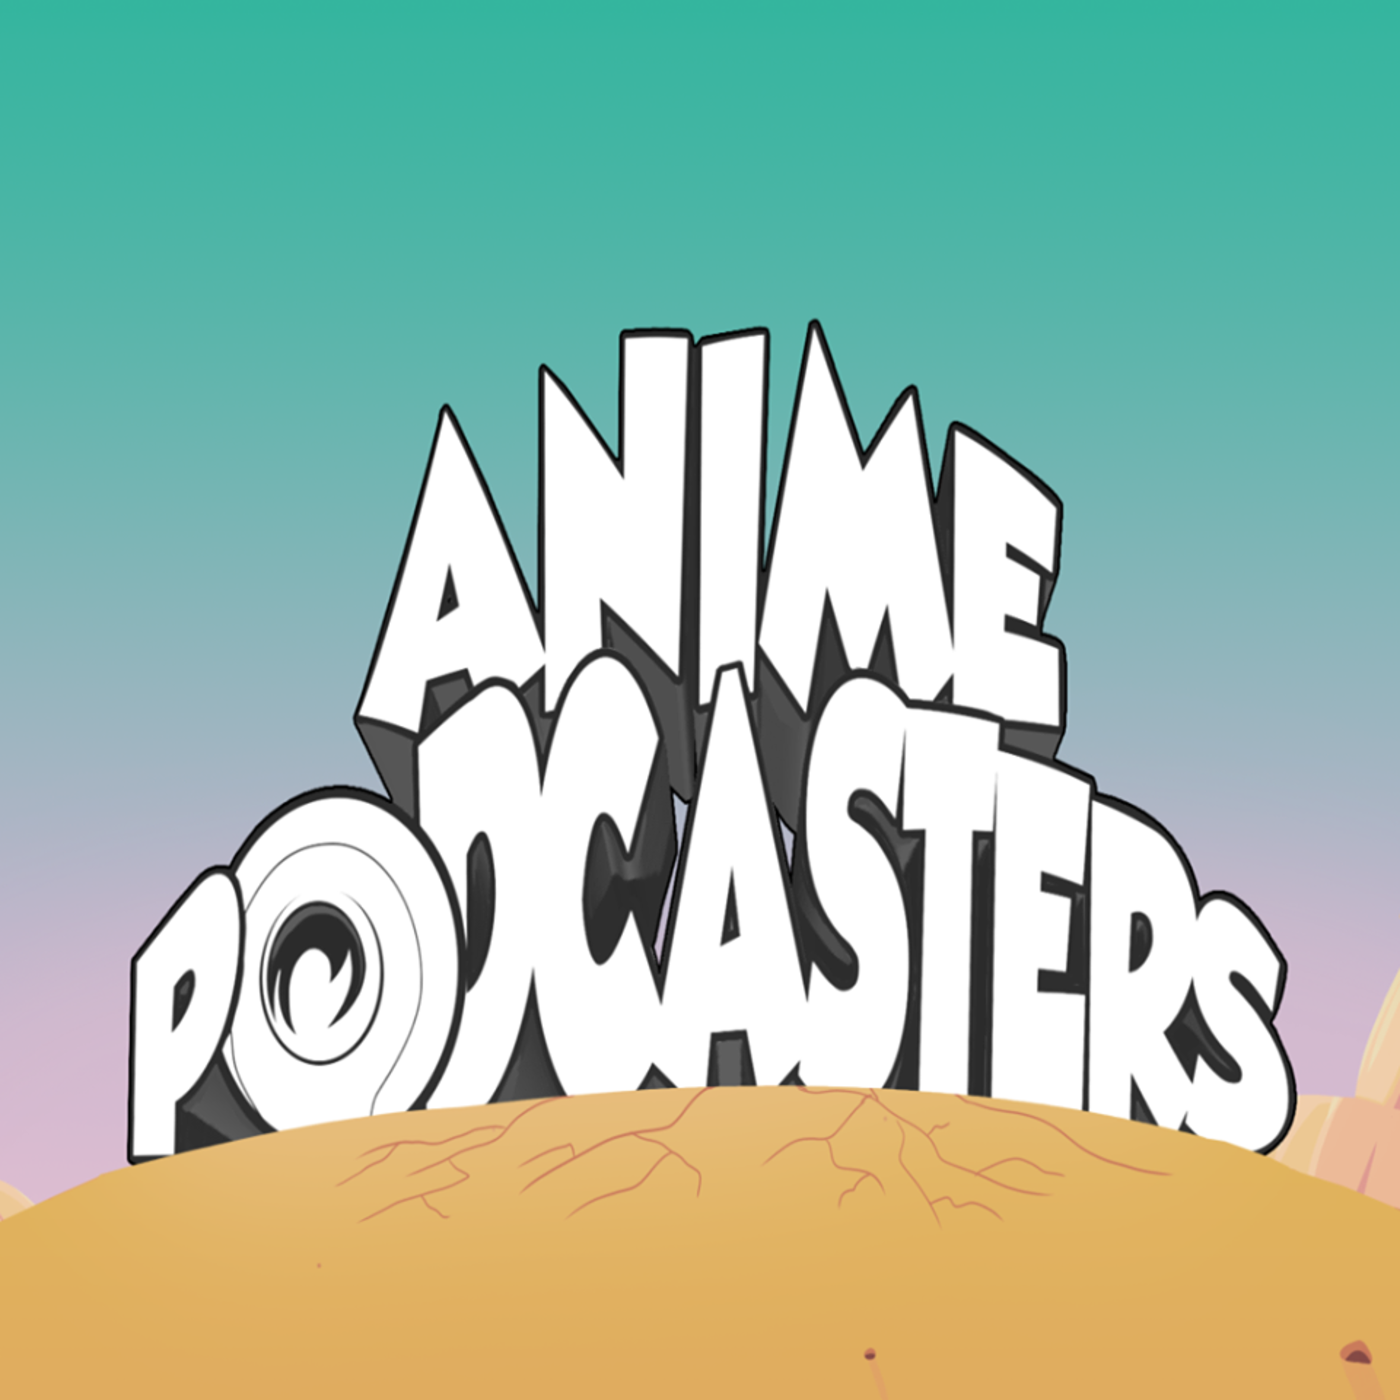 Anime Podcasters 101: Anime 101 Ft. Acaci